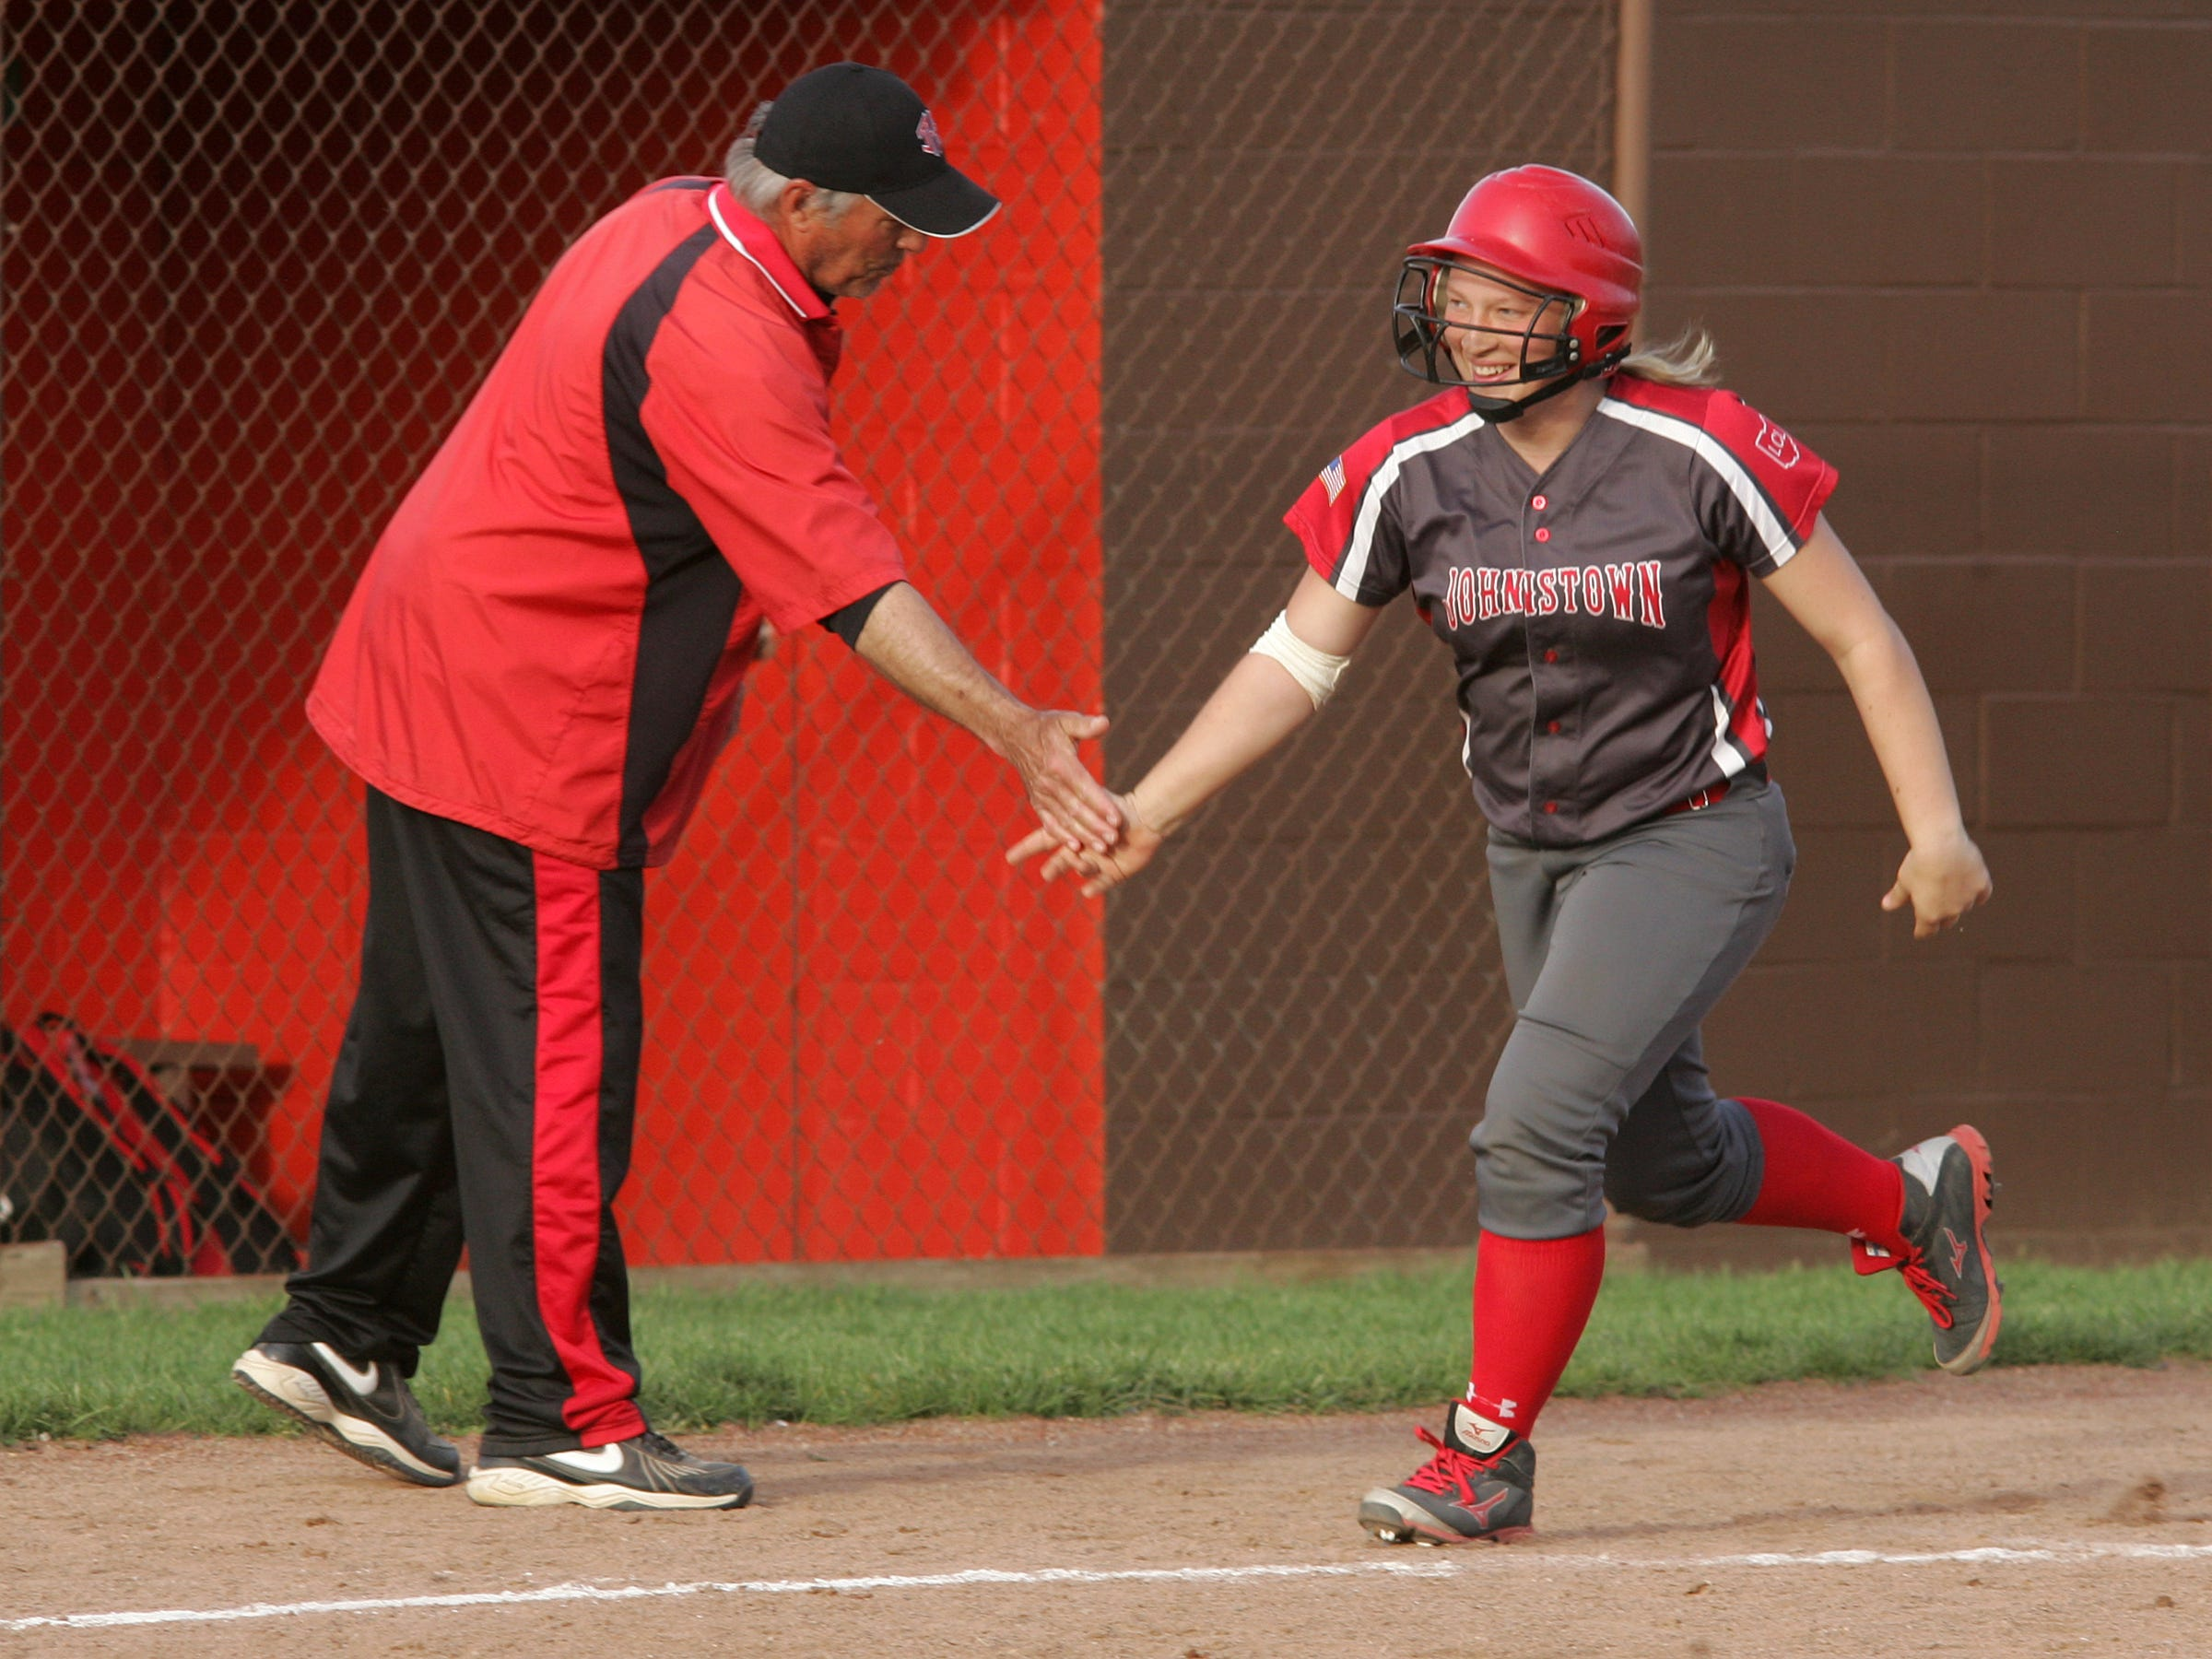 Johnstown junior Erin McConnell receives a low-five from coach Steve Smith after hitting a home run during Friday's fifth inning against Heath to help the Johnnies to a 14-4 victory in six innings.